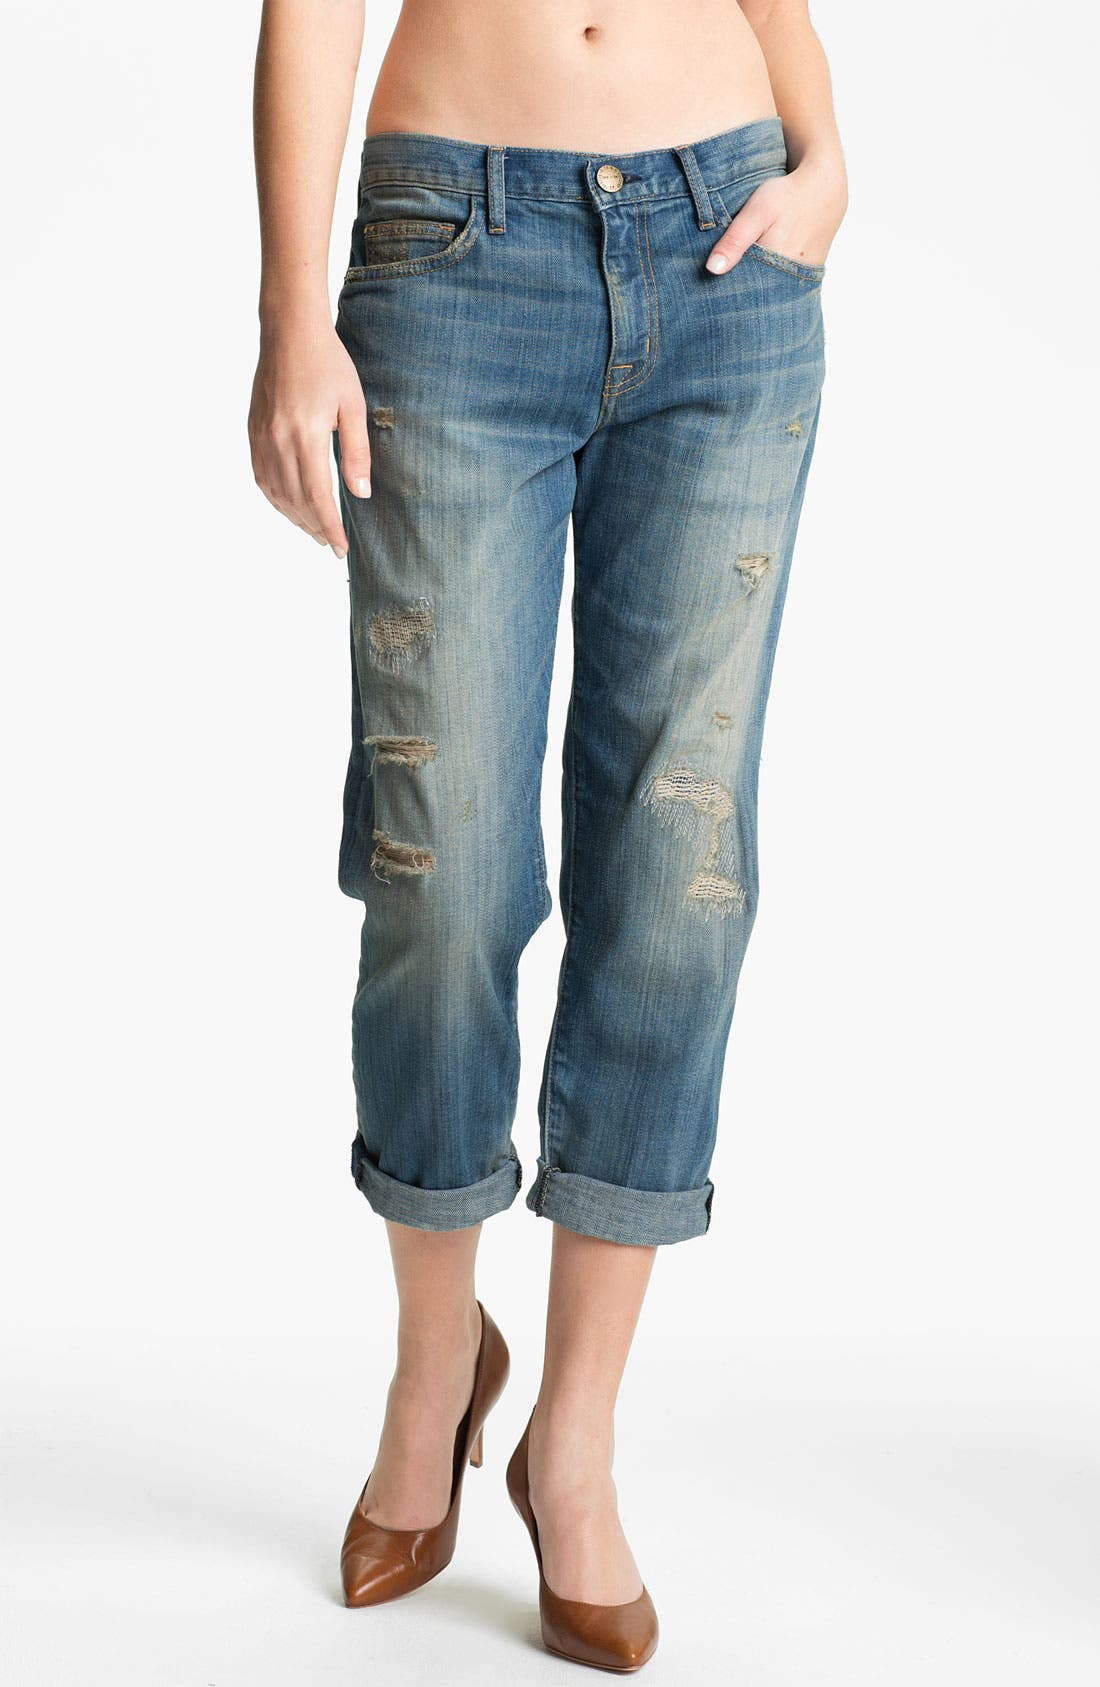 Alternate Image 1 Selected - Current/Elliott 'The Boyfriend Jean' Stretch Jeans (Panhandle with Repair)